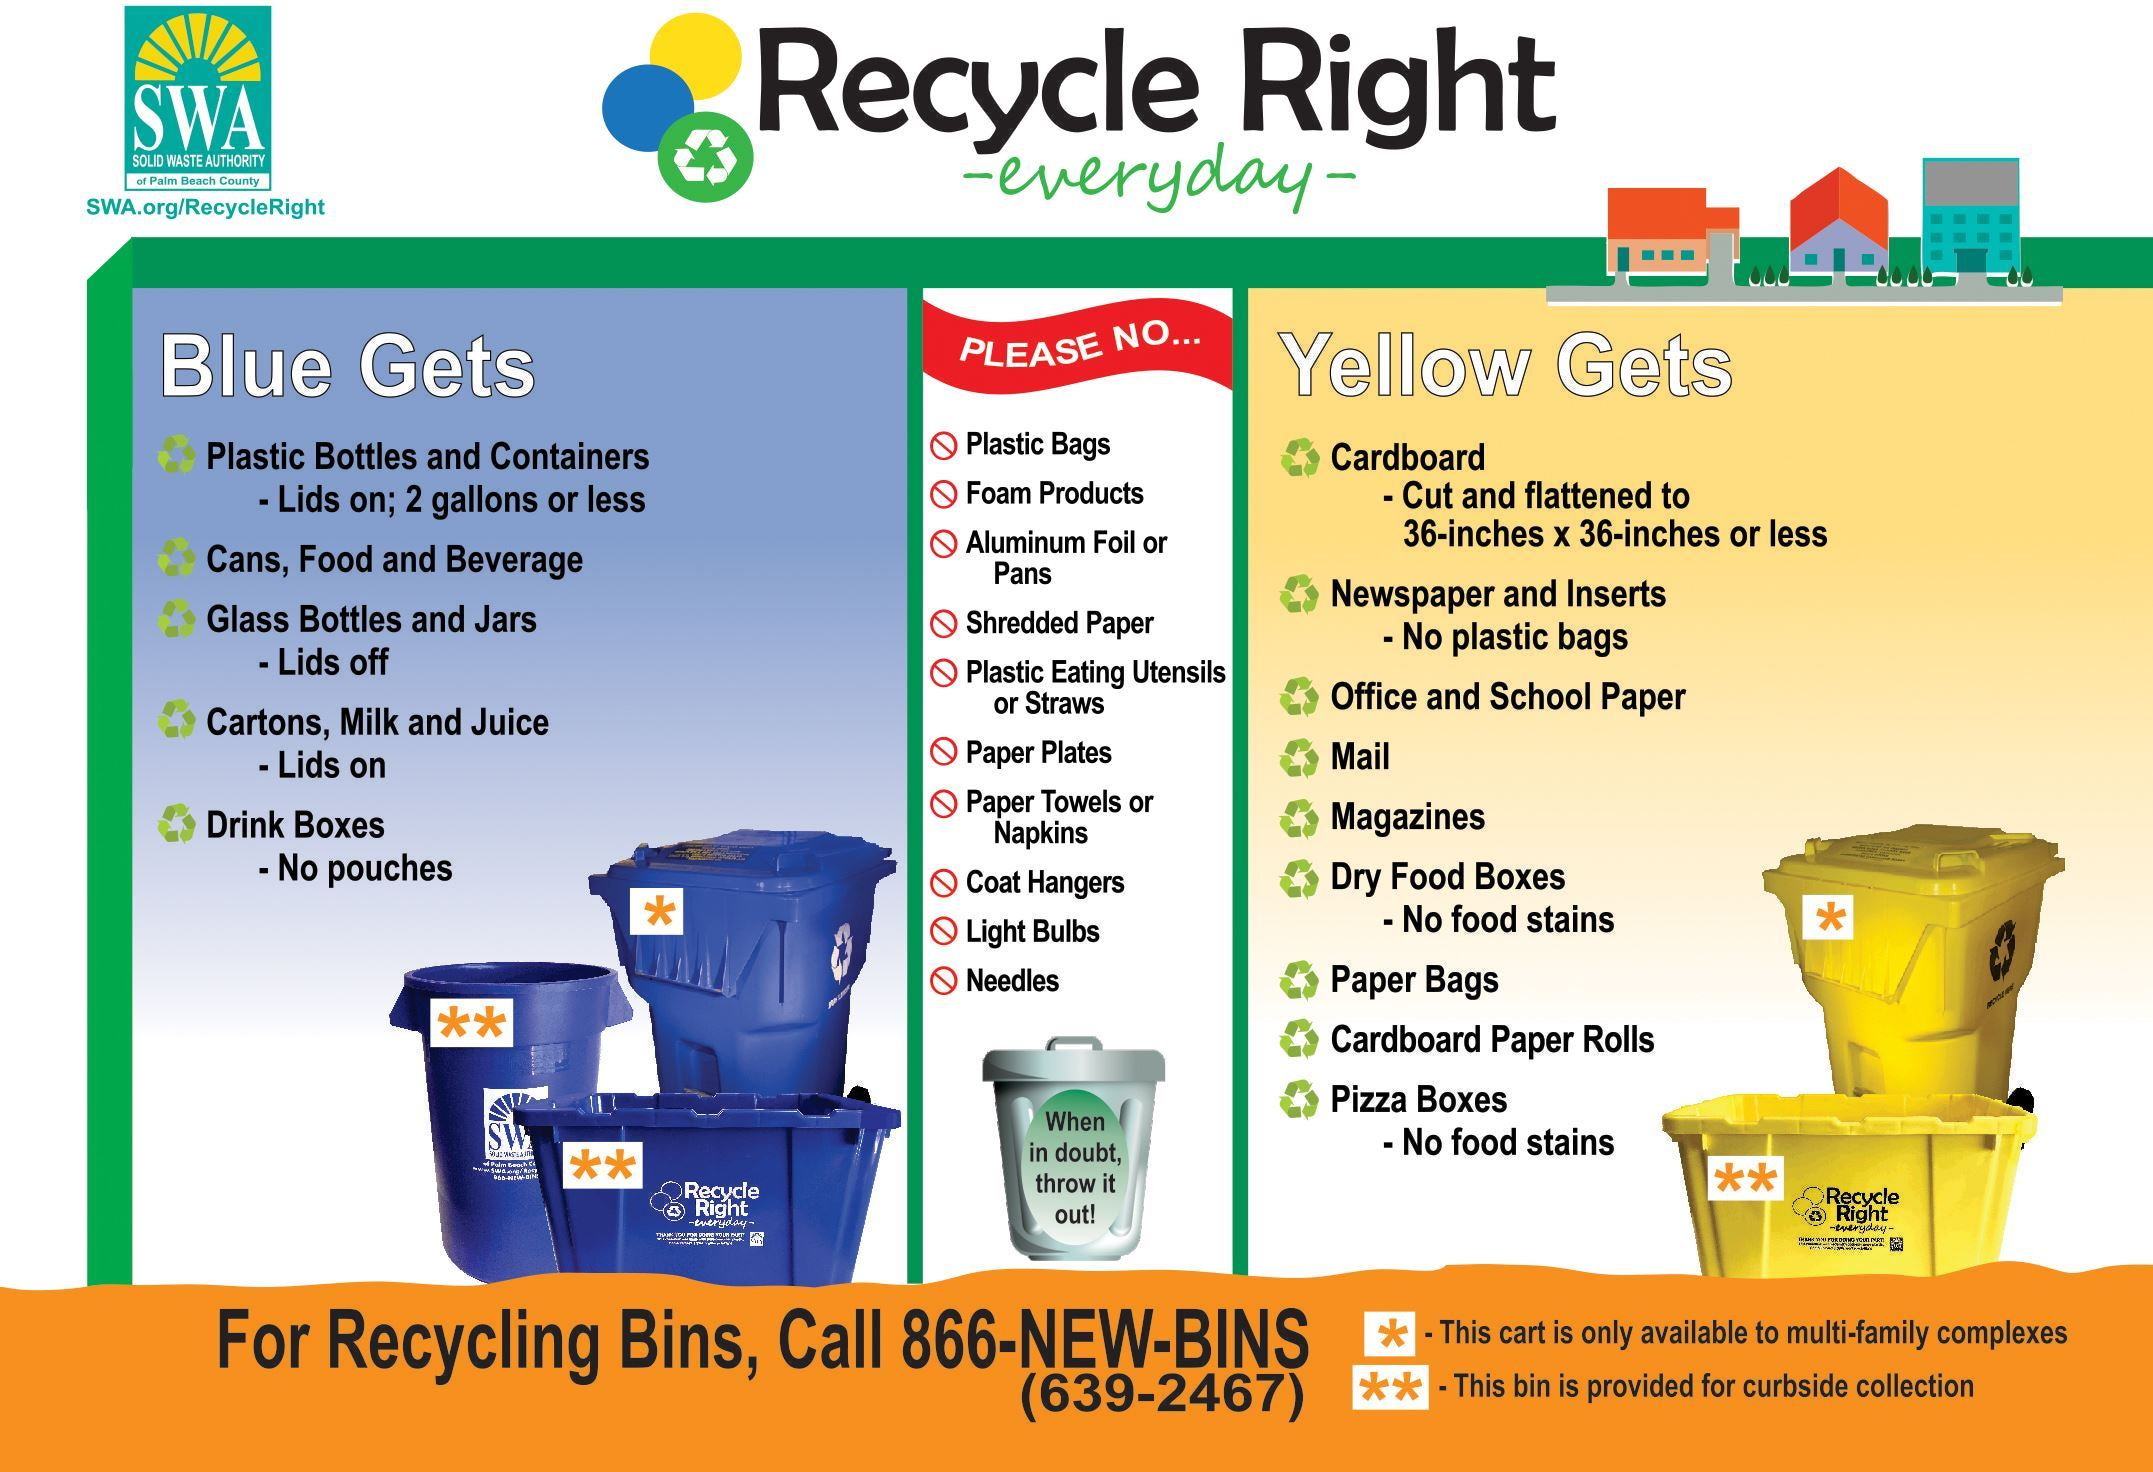 Image showing what to put in your recycle bins.  Blue bin gets plastic bottles and containers, cans,